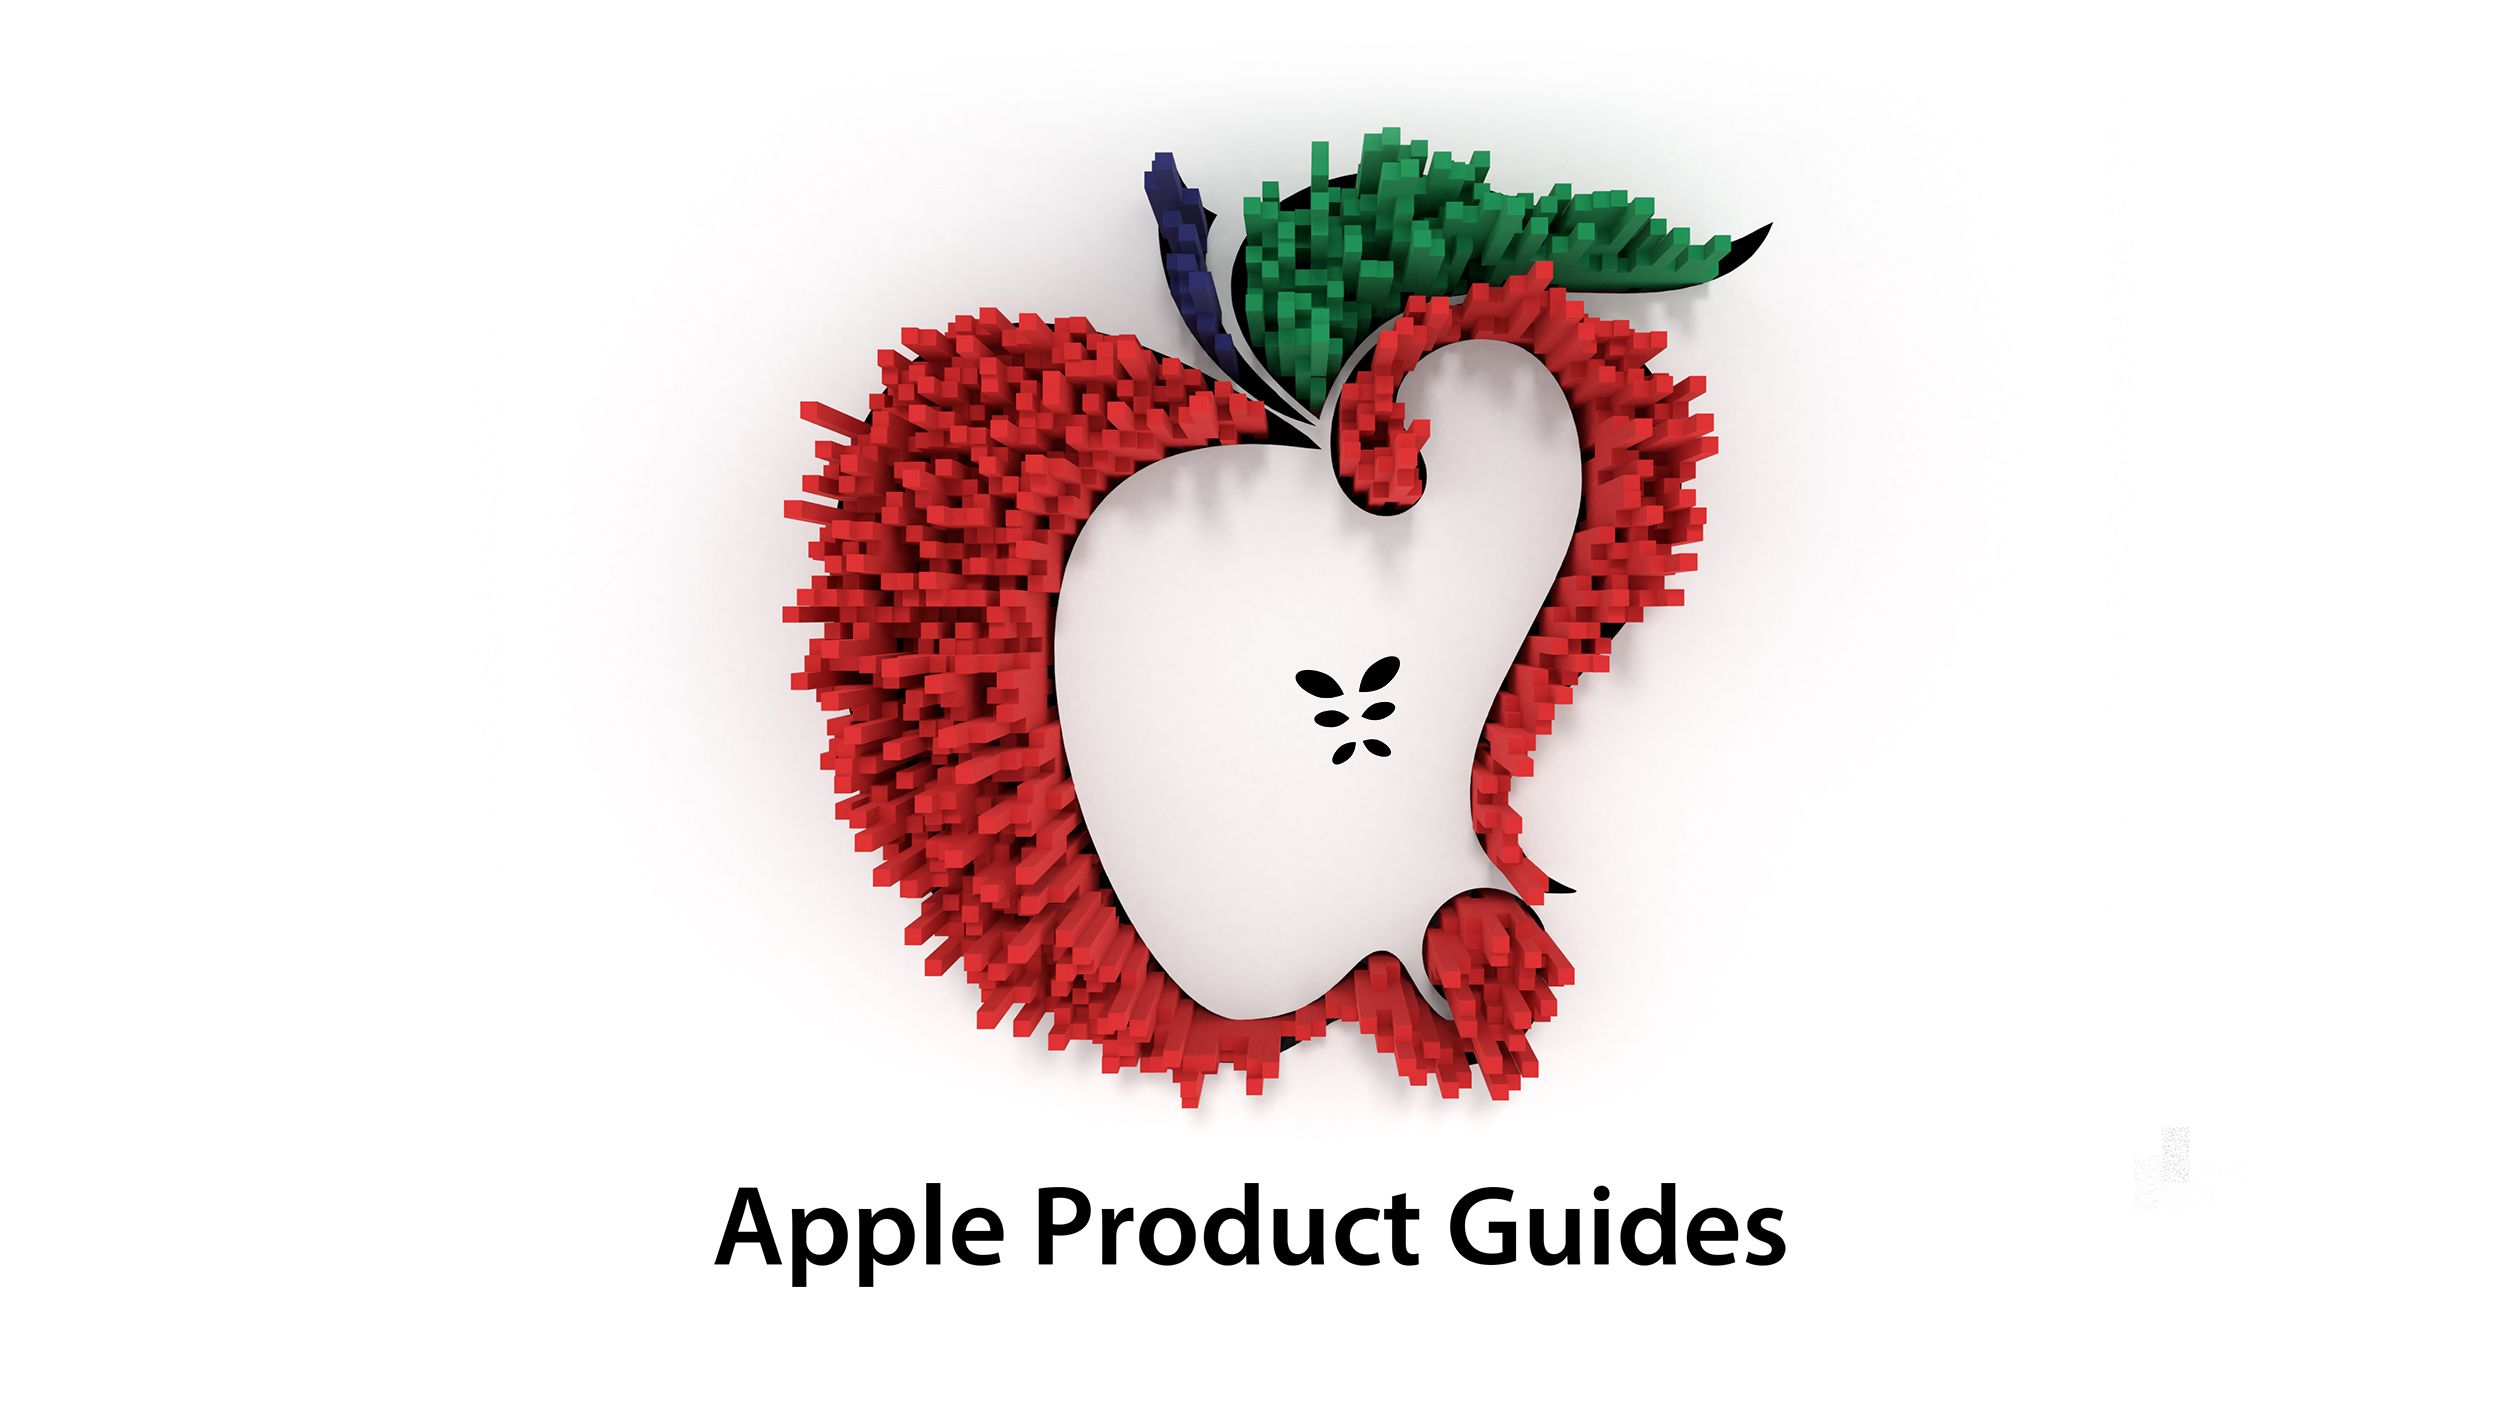 Apple product guides feature 1.5